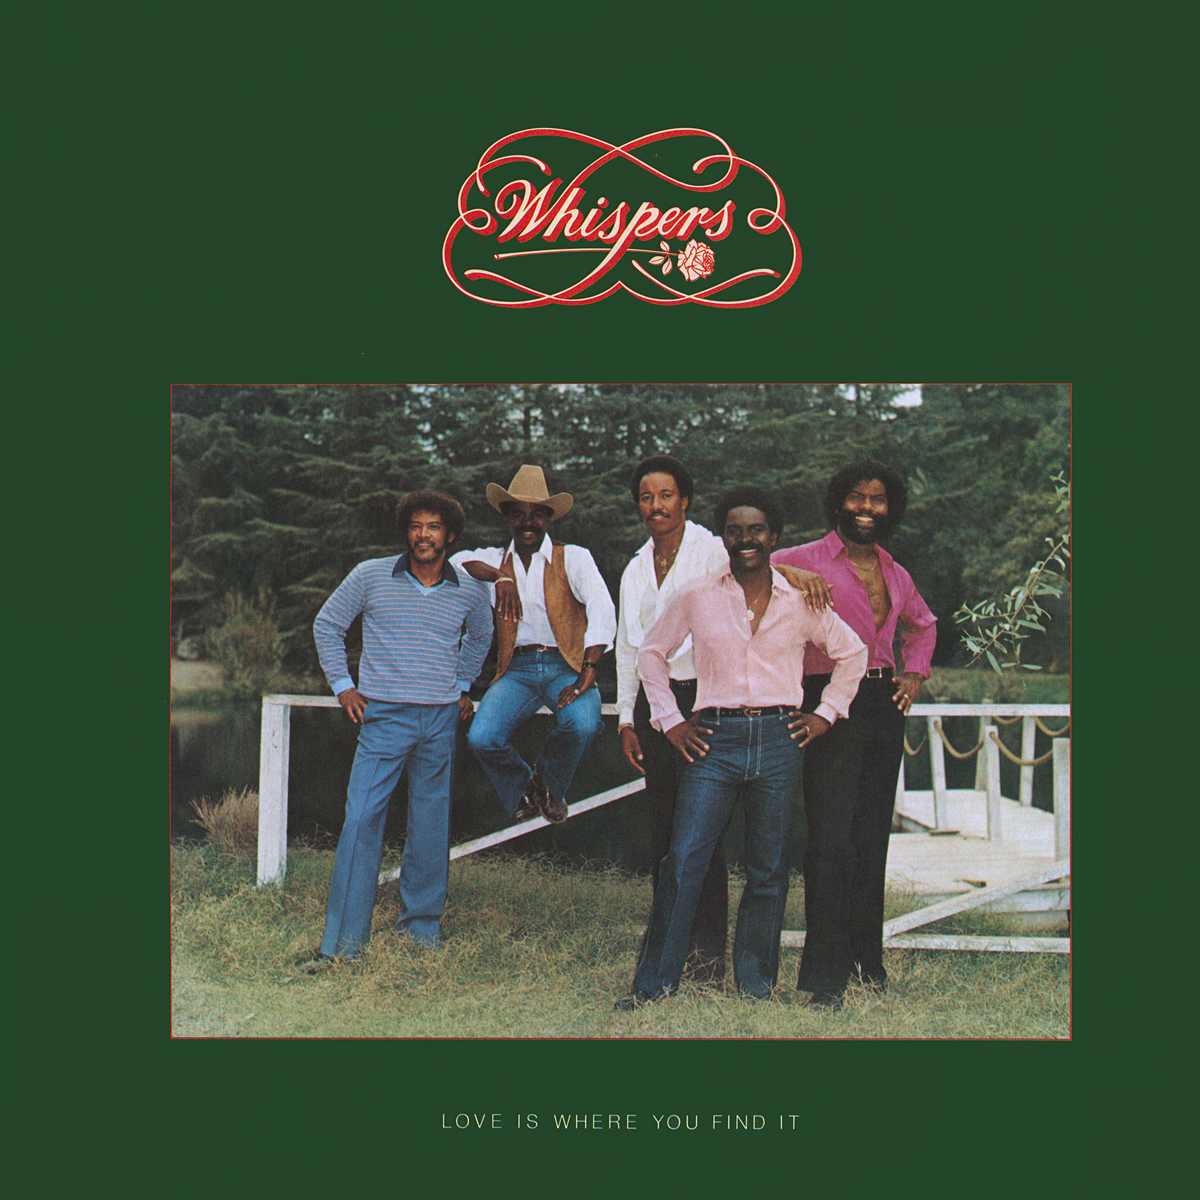 The Whispers Love Is Where You Find It Vinyl Album